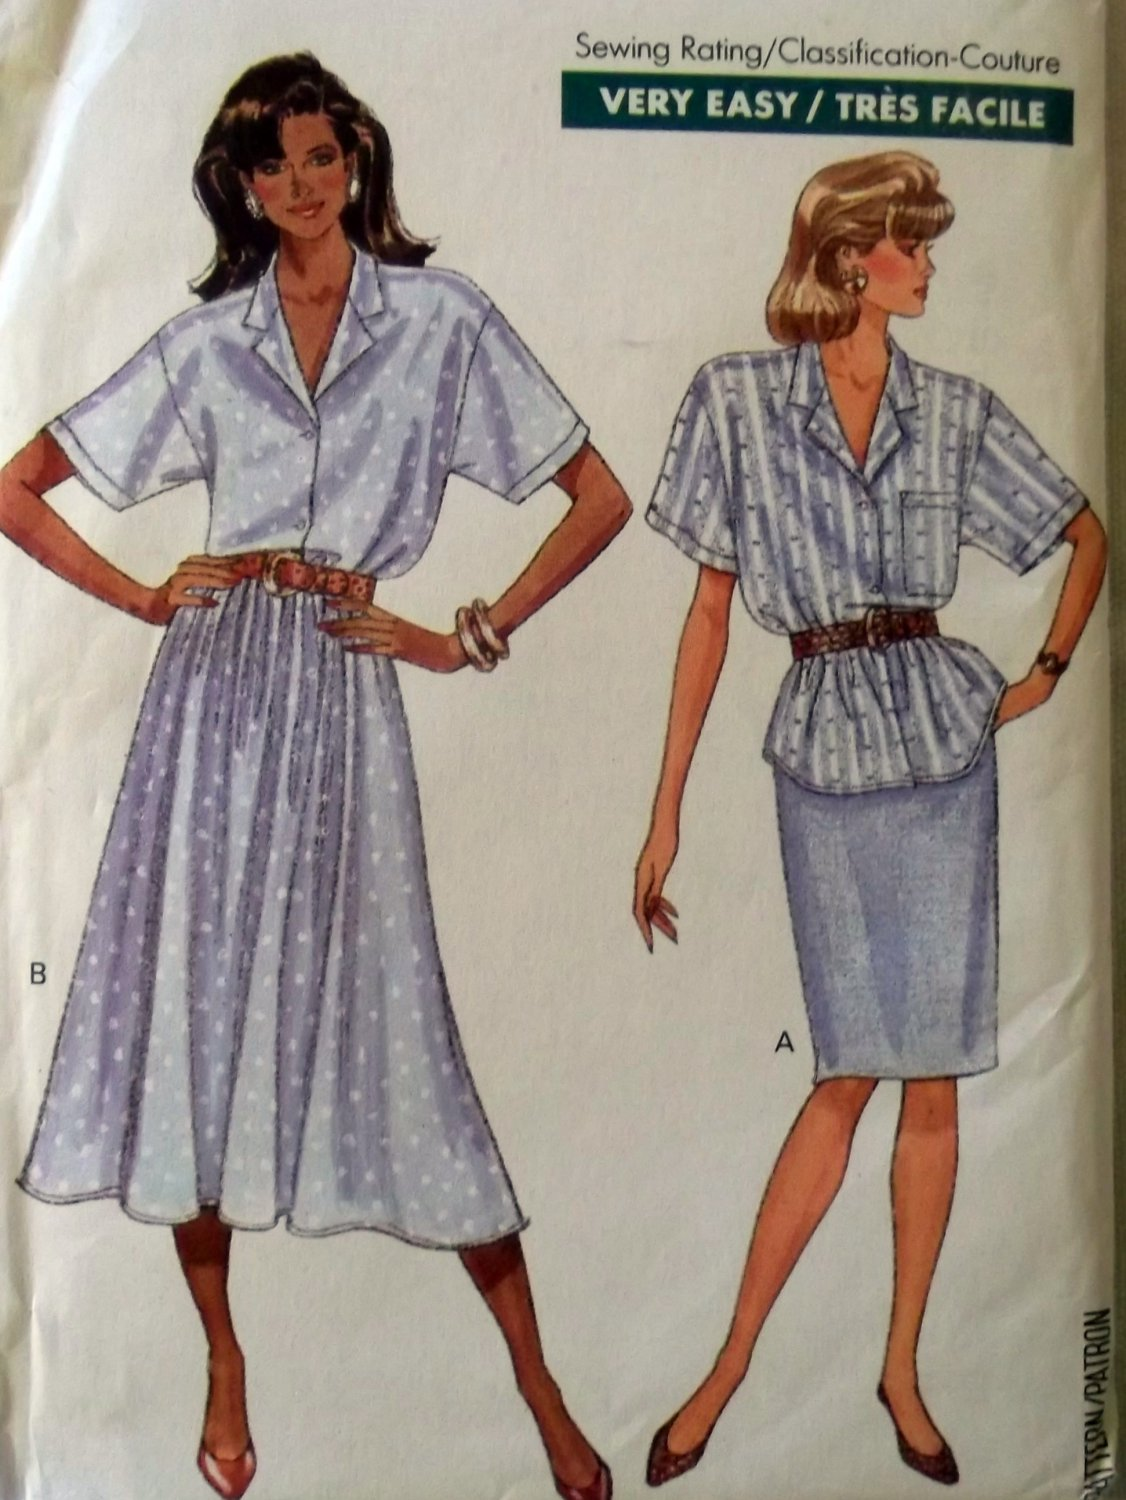 Fast & Easy Butterick 6101 Top & Skirt Sewing Pattern, Size P-S-M, Uncut